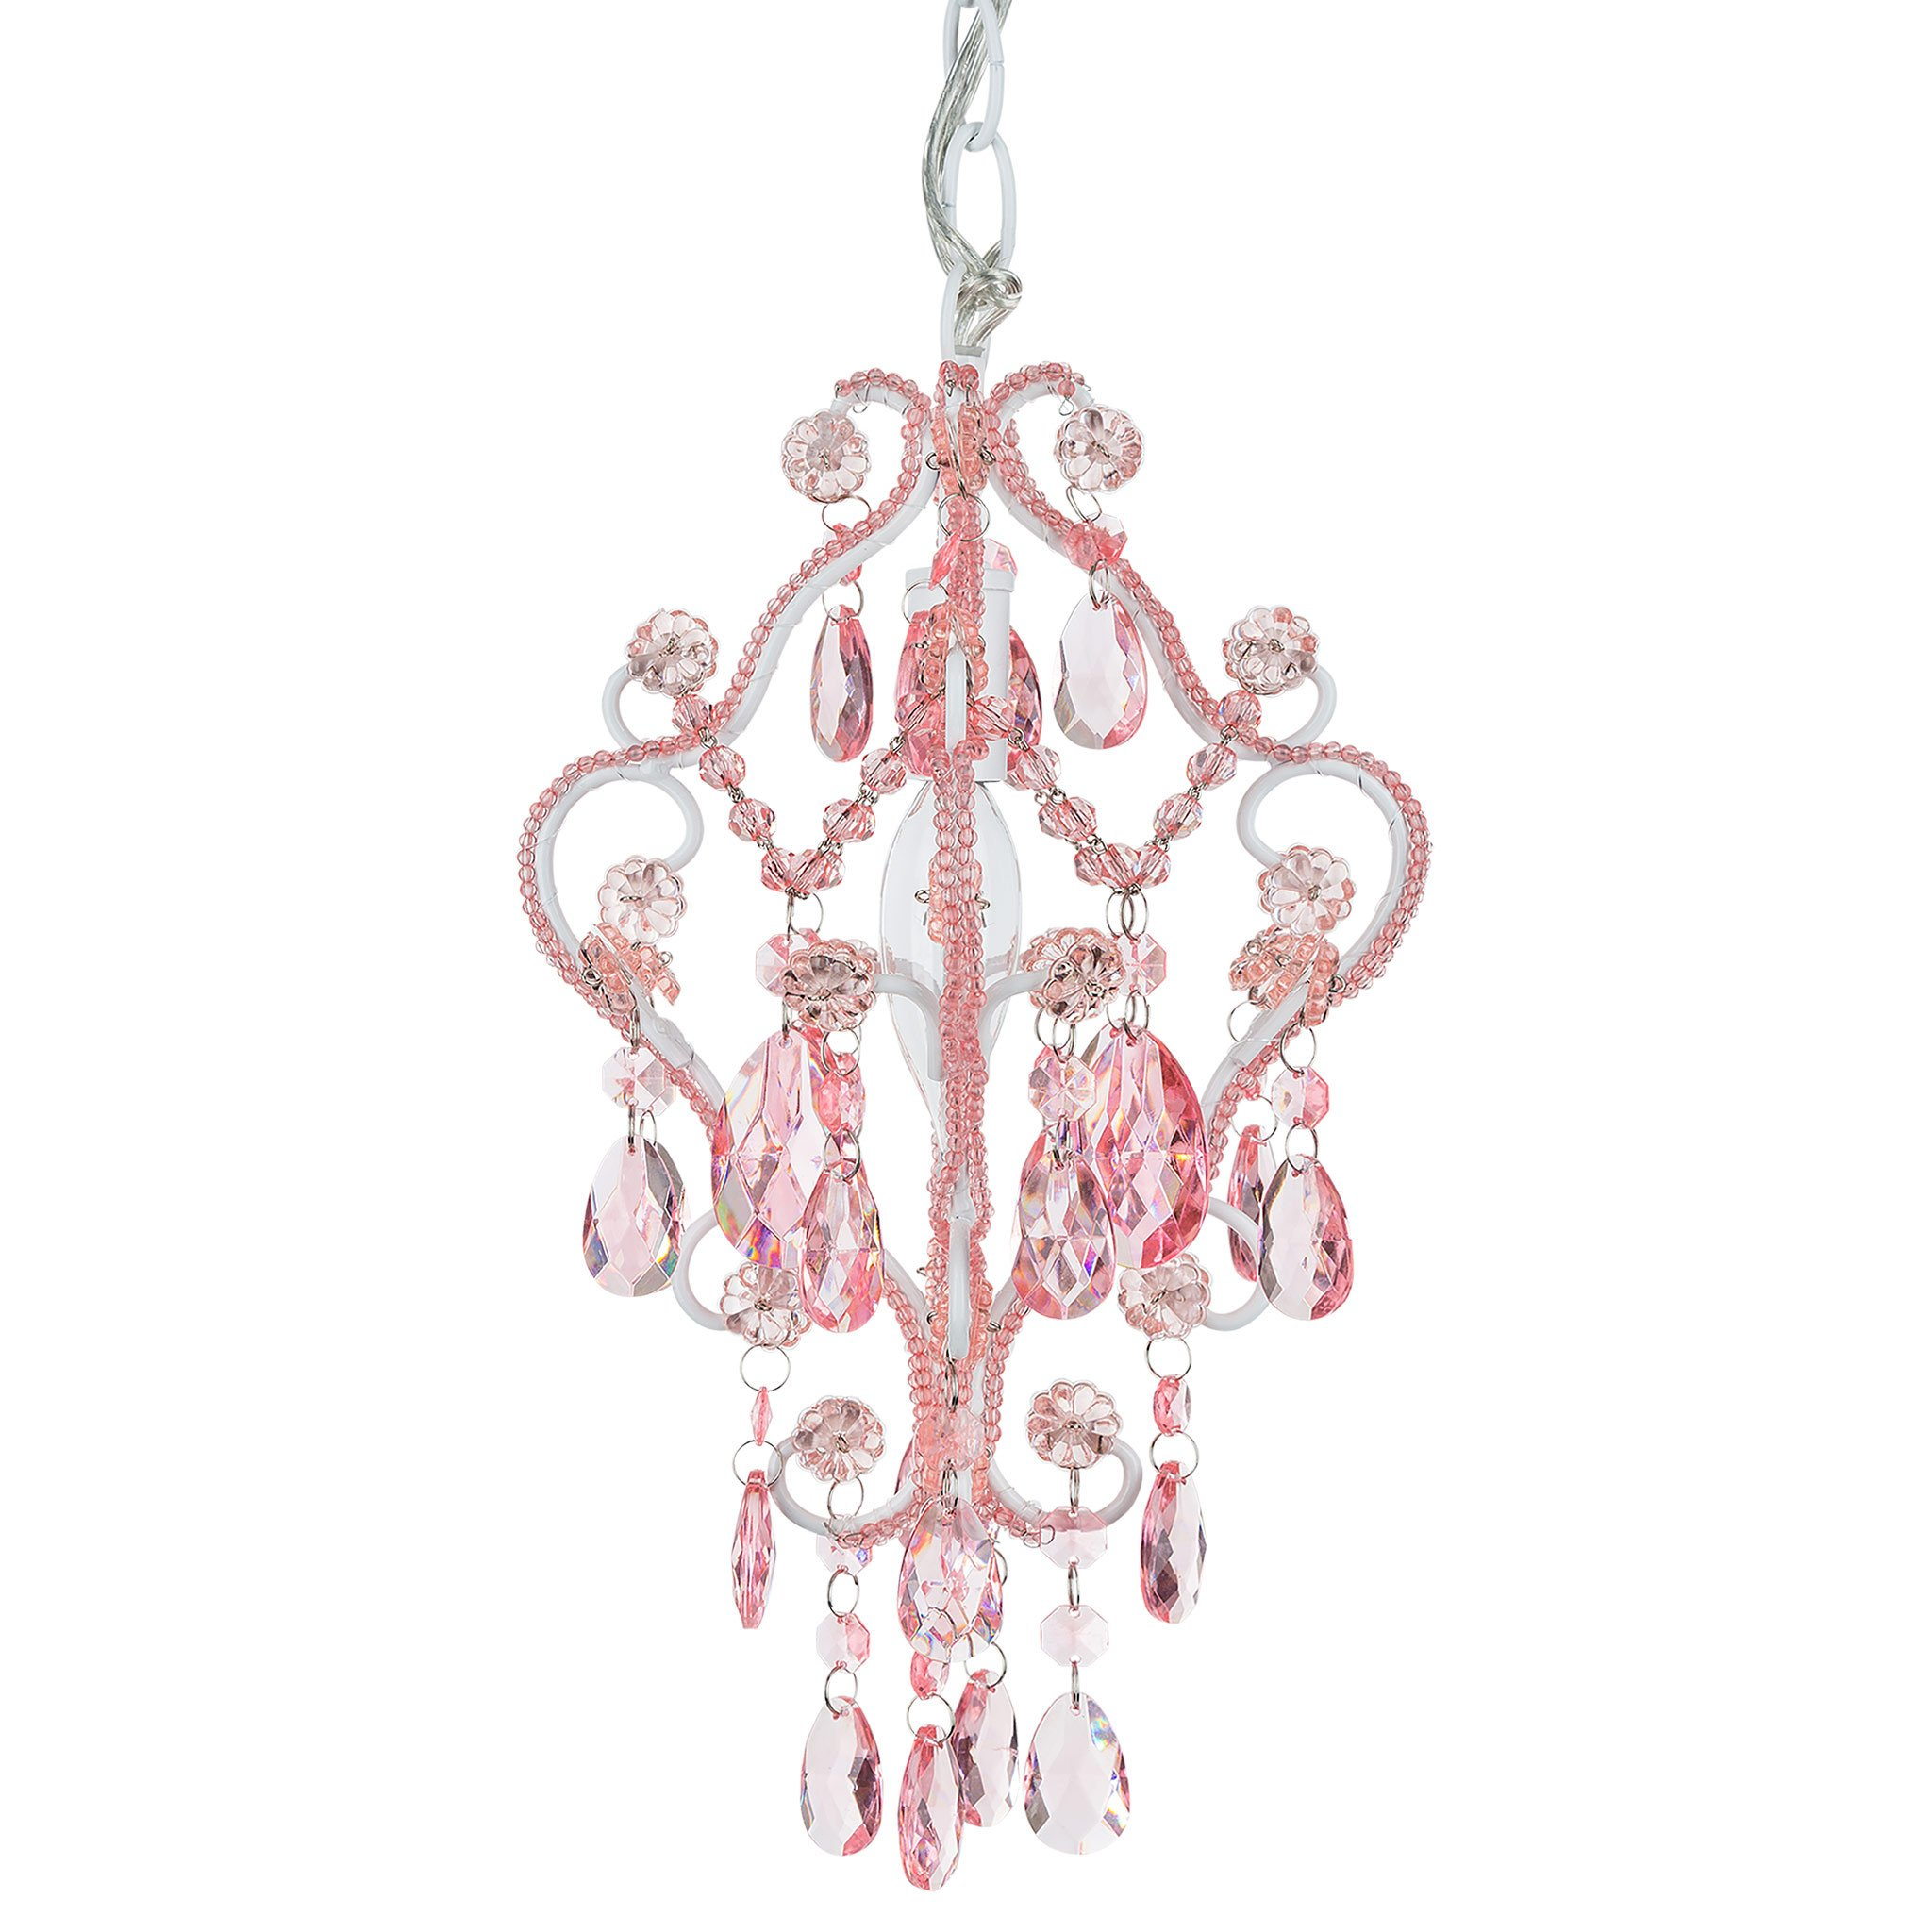 Amalfi Decor 1 Light Mini Crystal-Beaded Nursery Chandelier (Pink) | H | Wrought Iron Frame with Glass Crystals